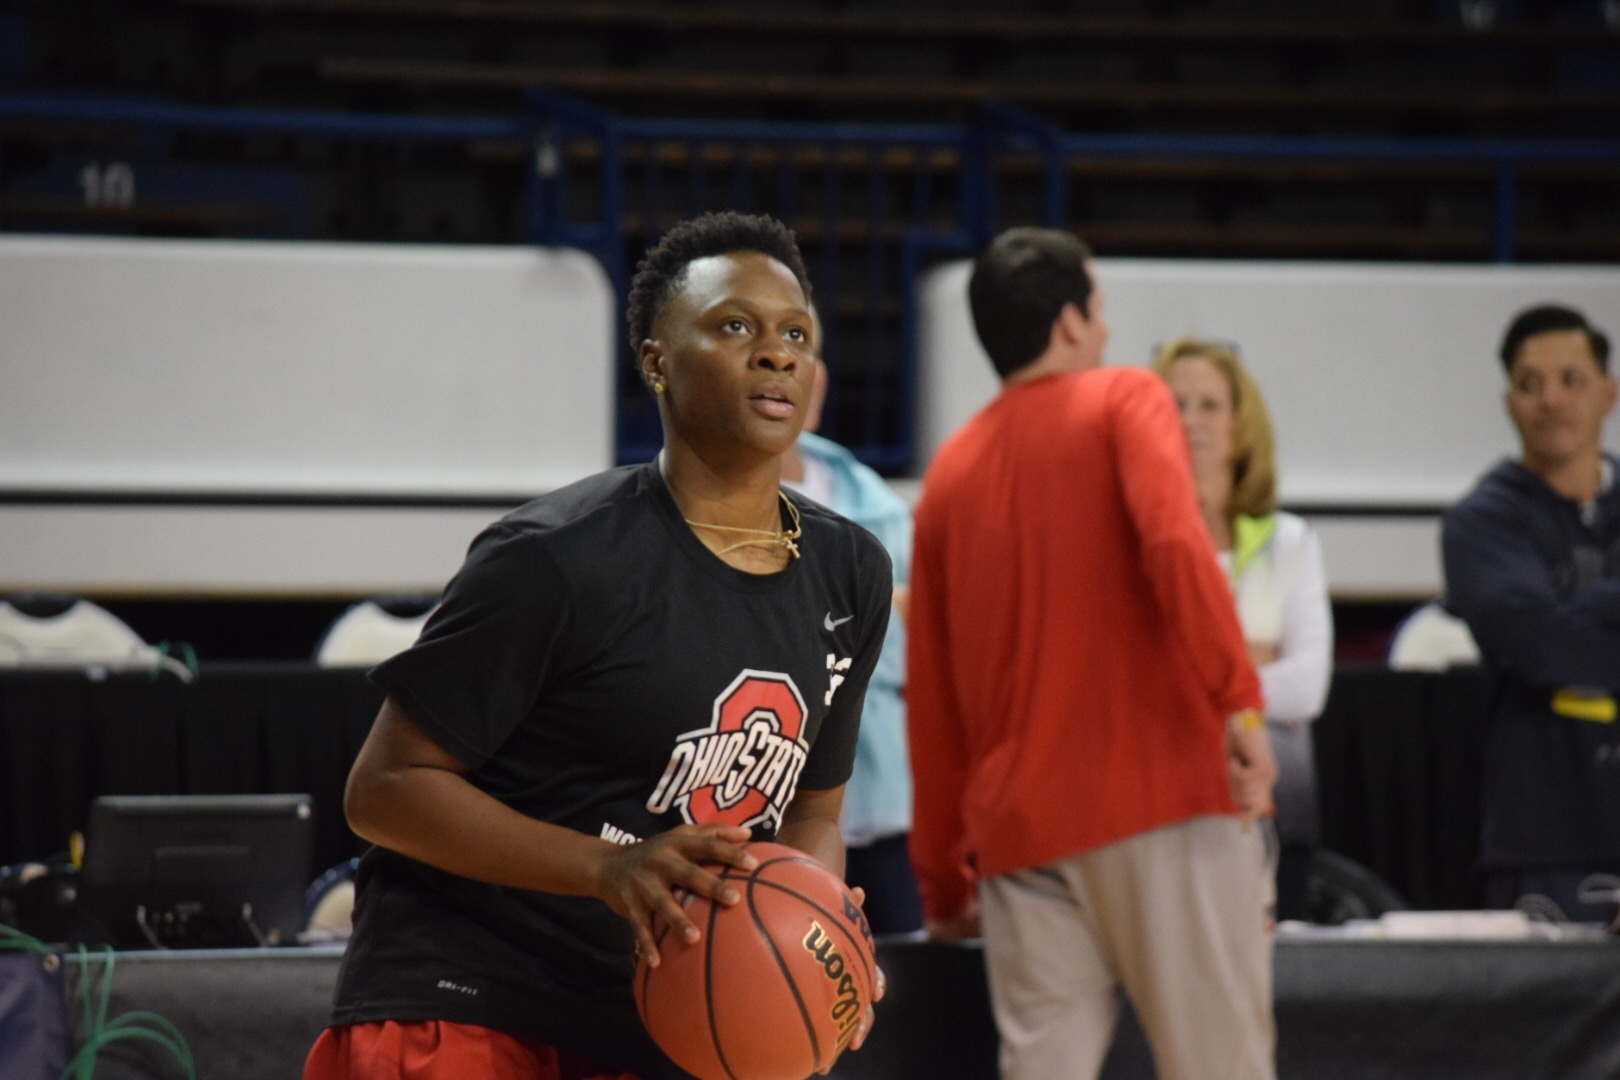 Ohio State women's basketball | 2017 NCAA Tournament, practice day + press conference prior to game against Western Kentucky.  Shayla  Cooper (32)